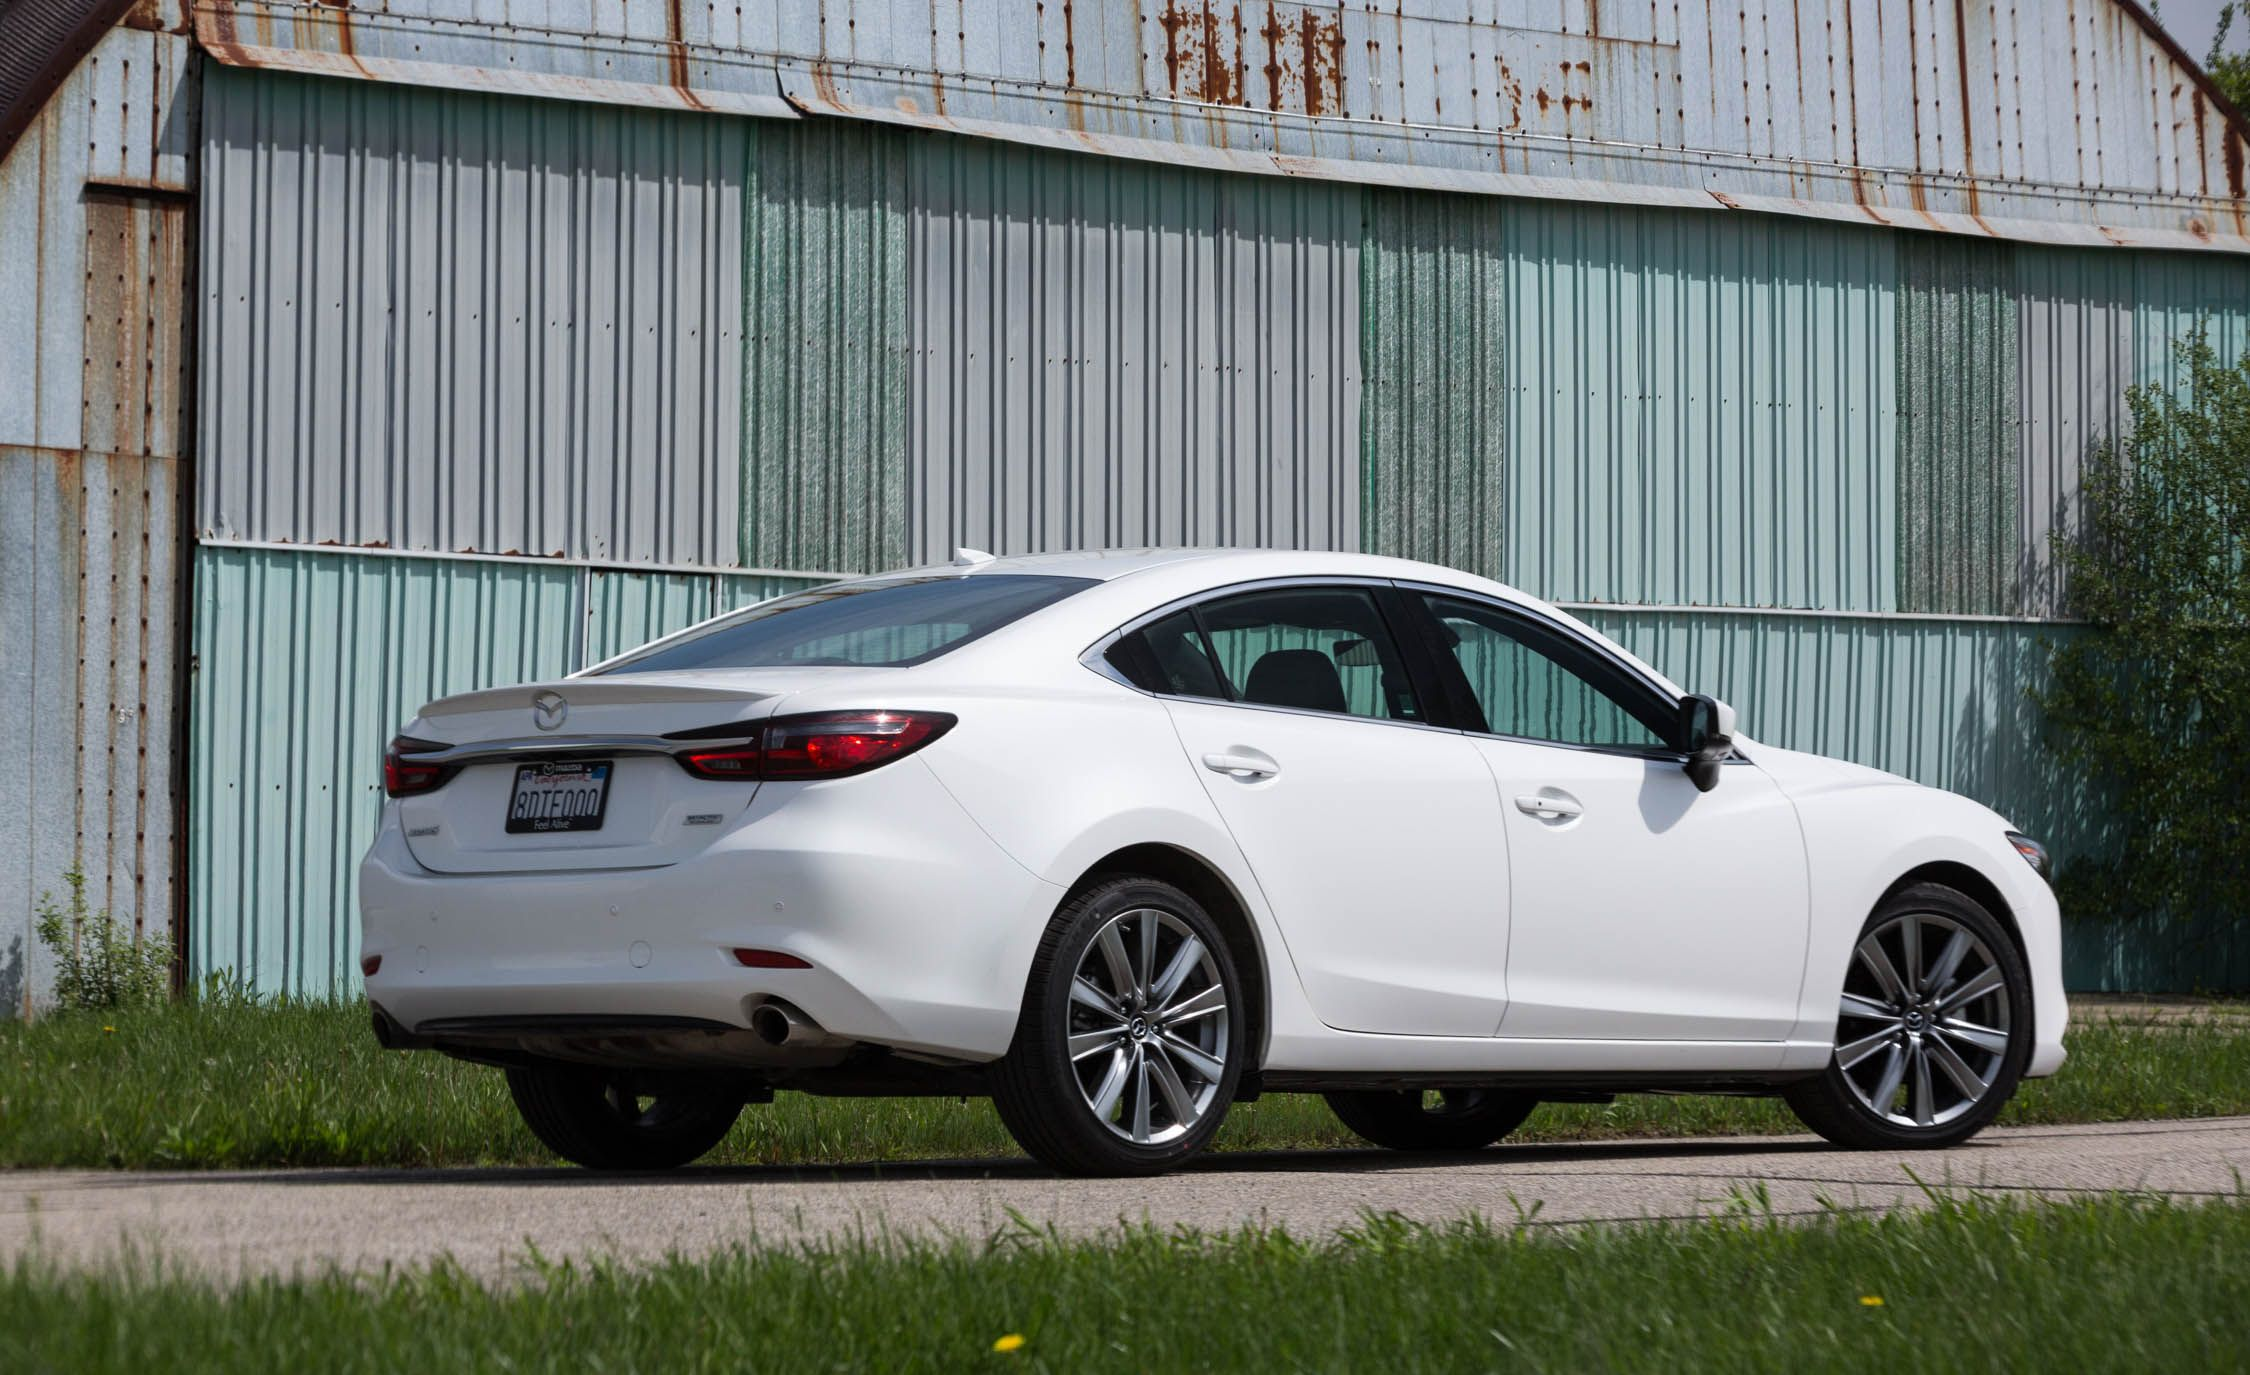 2019 Mazda 6 Reviews Price Photos And Specs 06 Chrysler 300 Fuse Box Location Illumination Car Driver